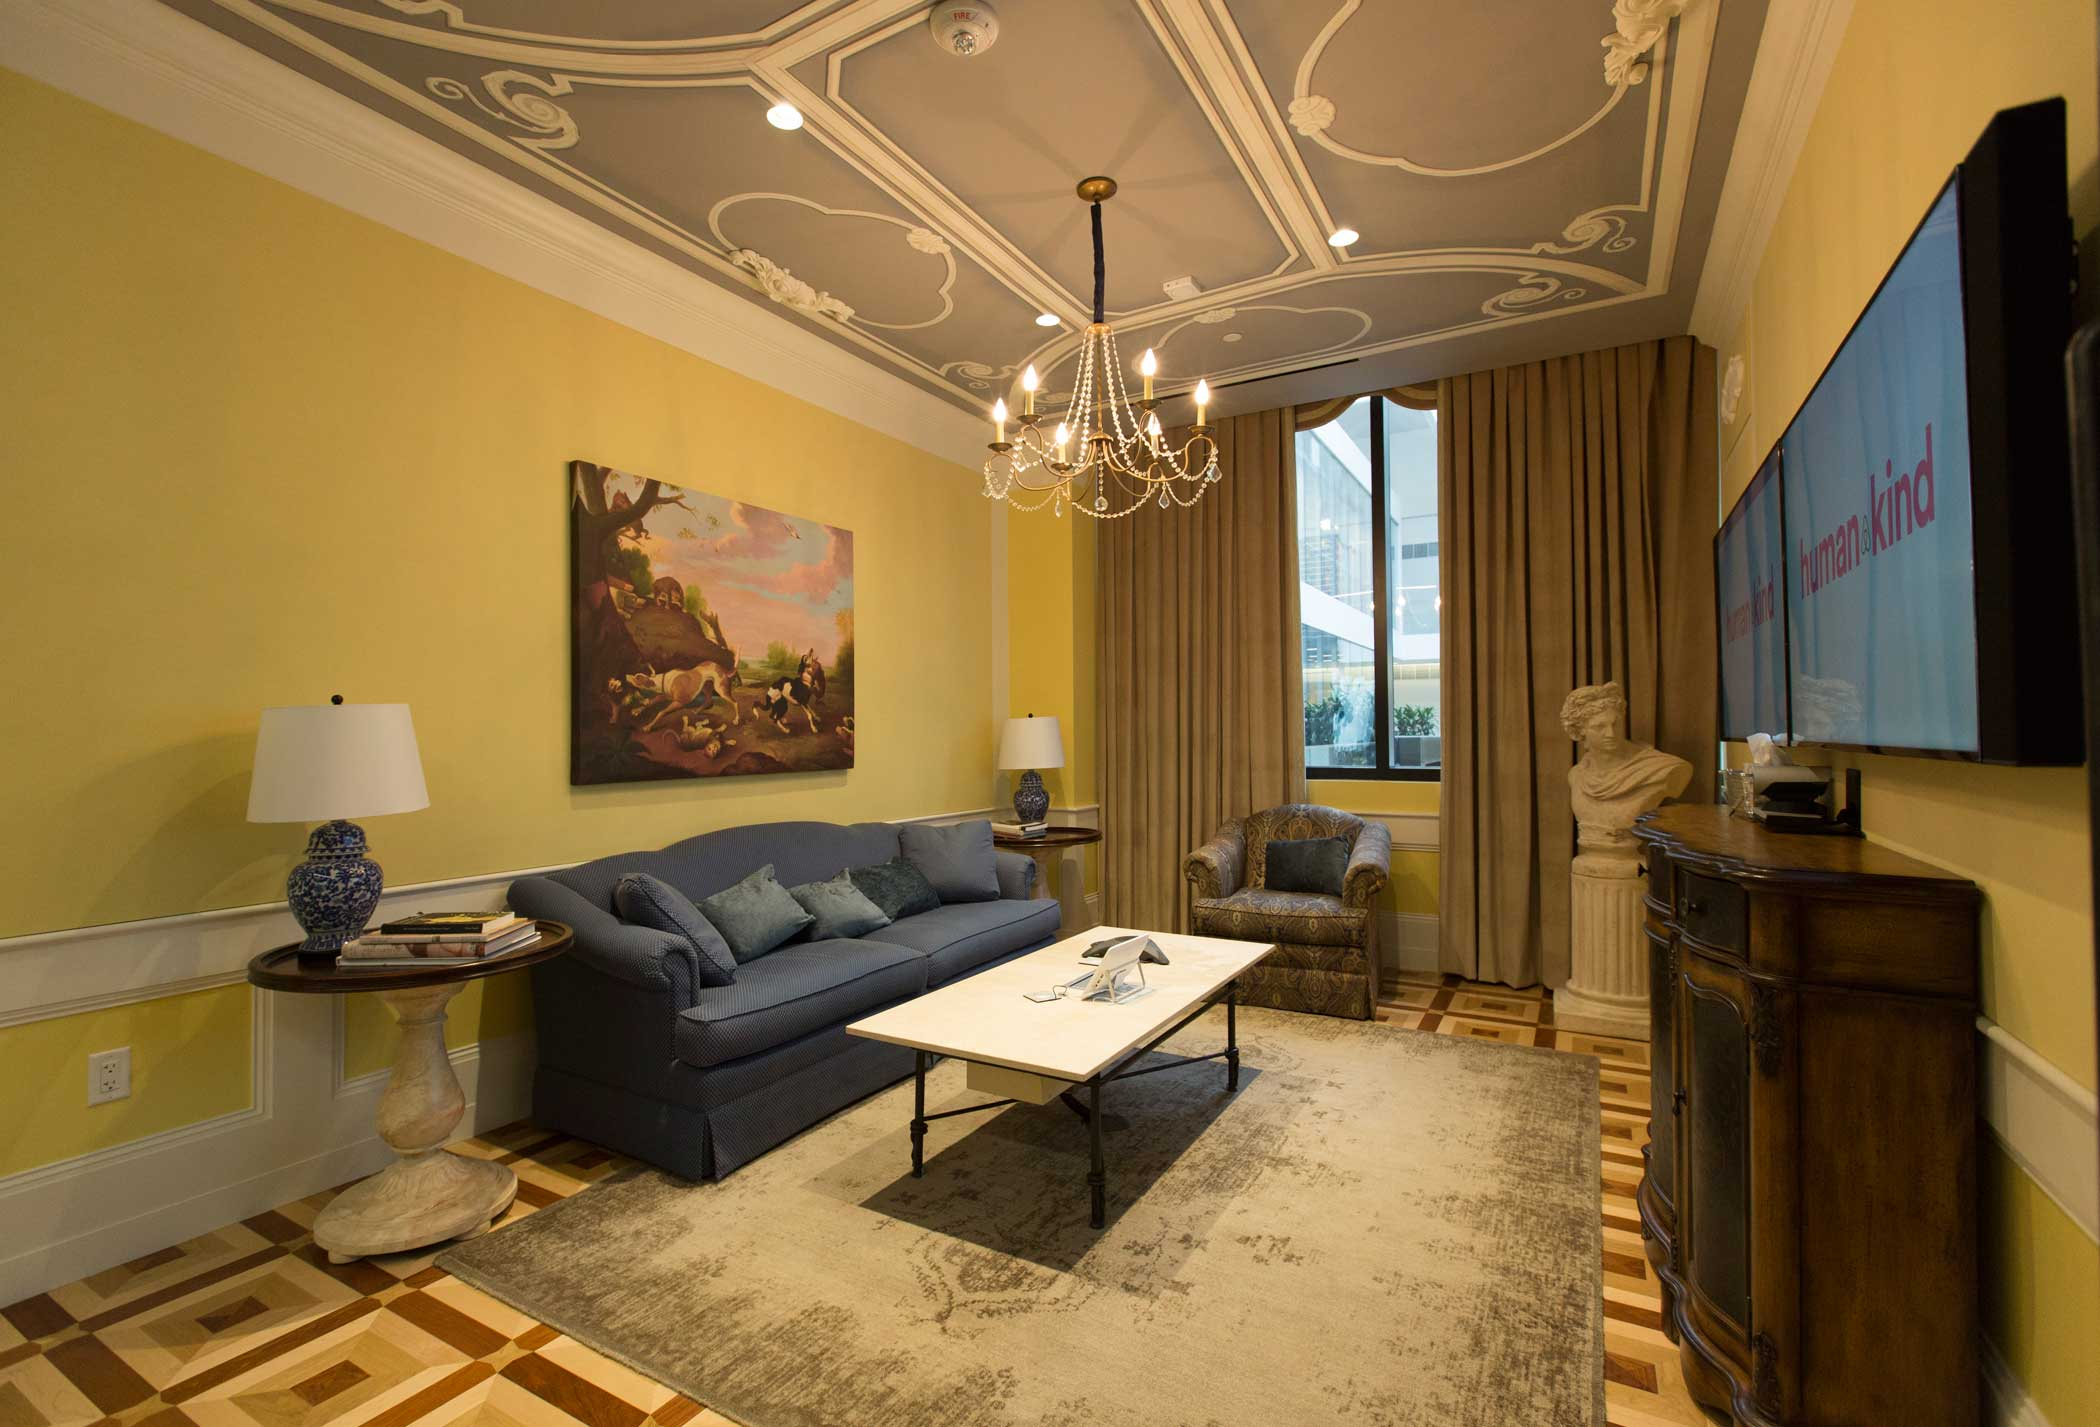 AirBnB's Portici, Italy room